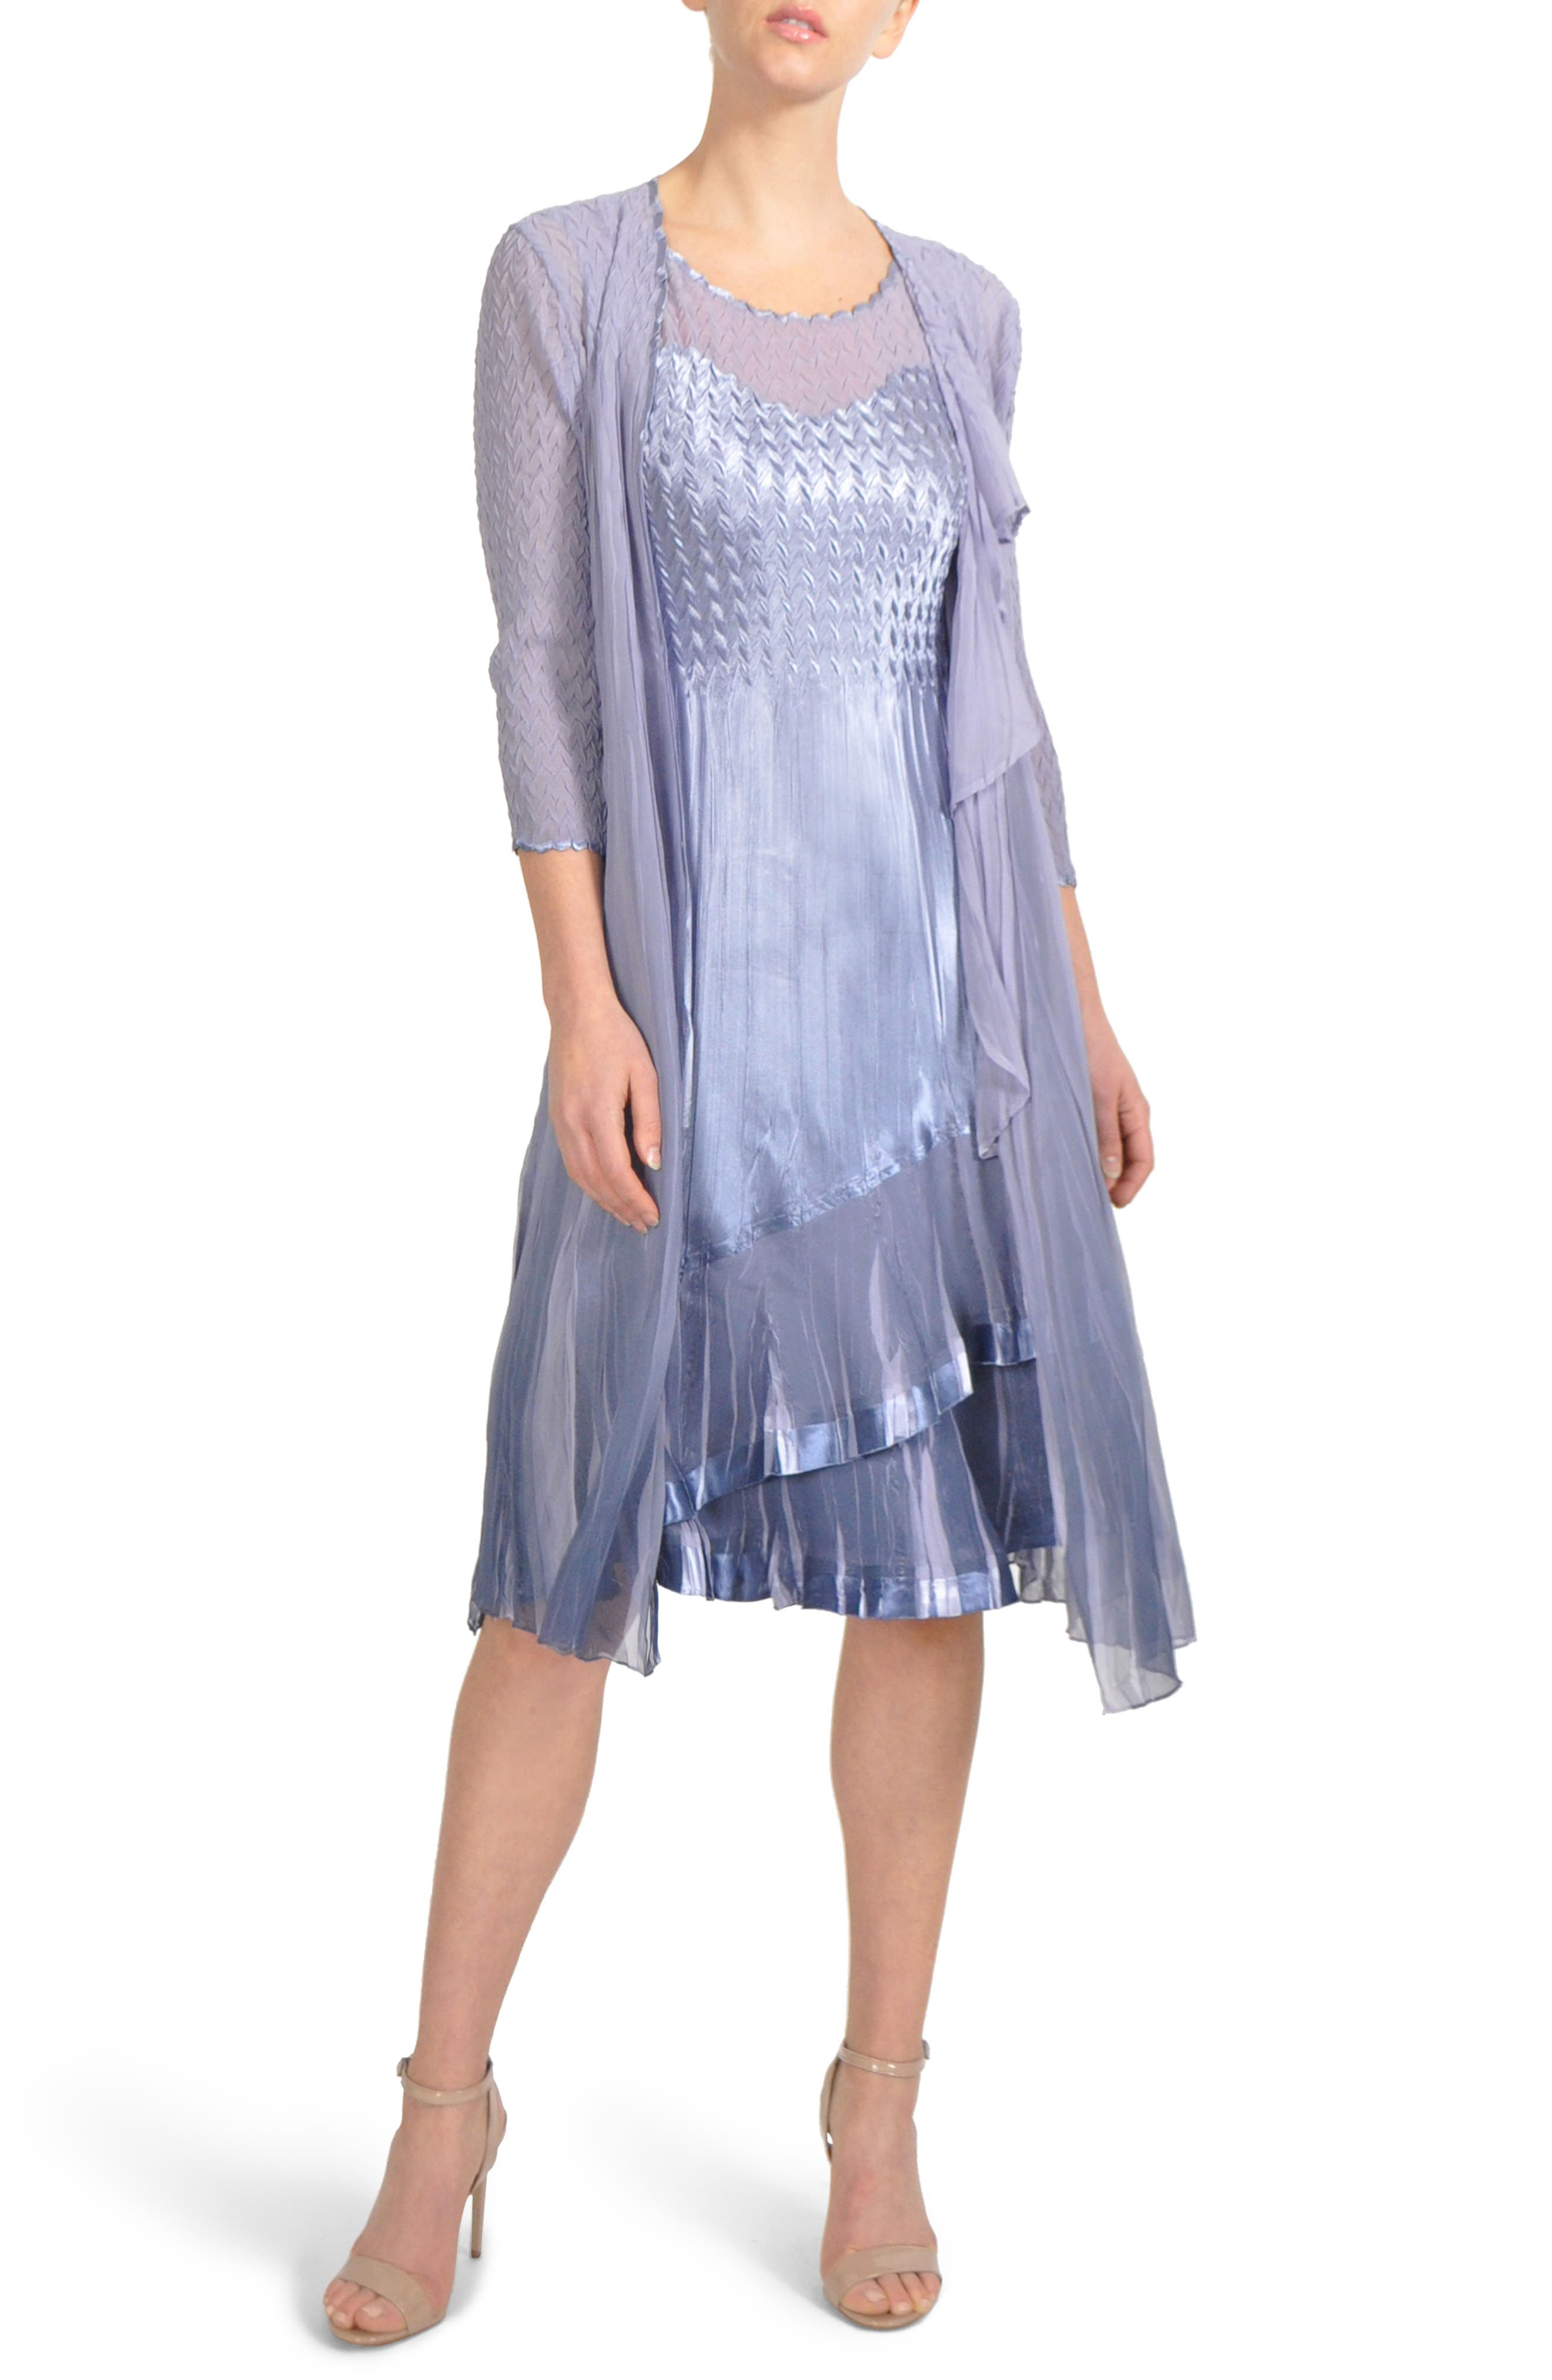 Charmeuse & Chiffon Midi Dress with Jacket,                         Main,                         color, Lavendar Grey Blue Ombre